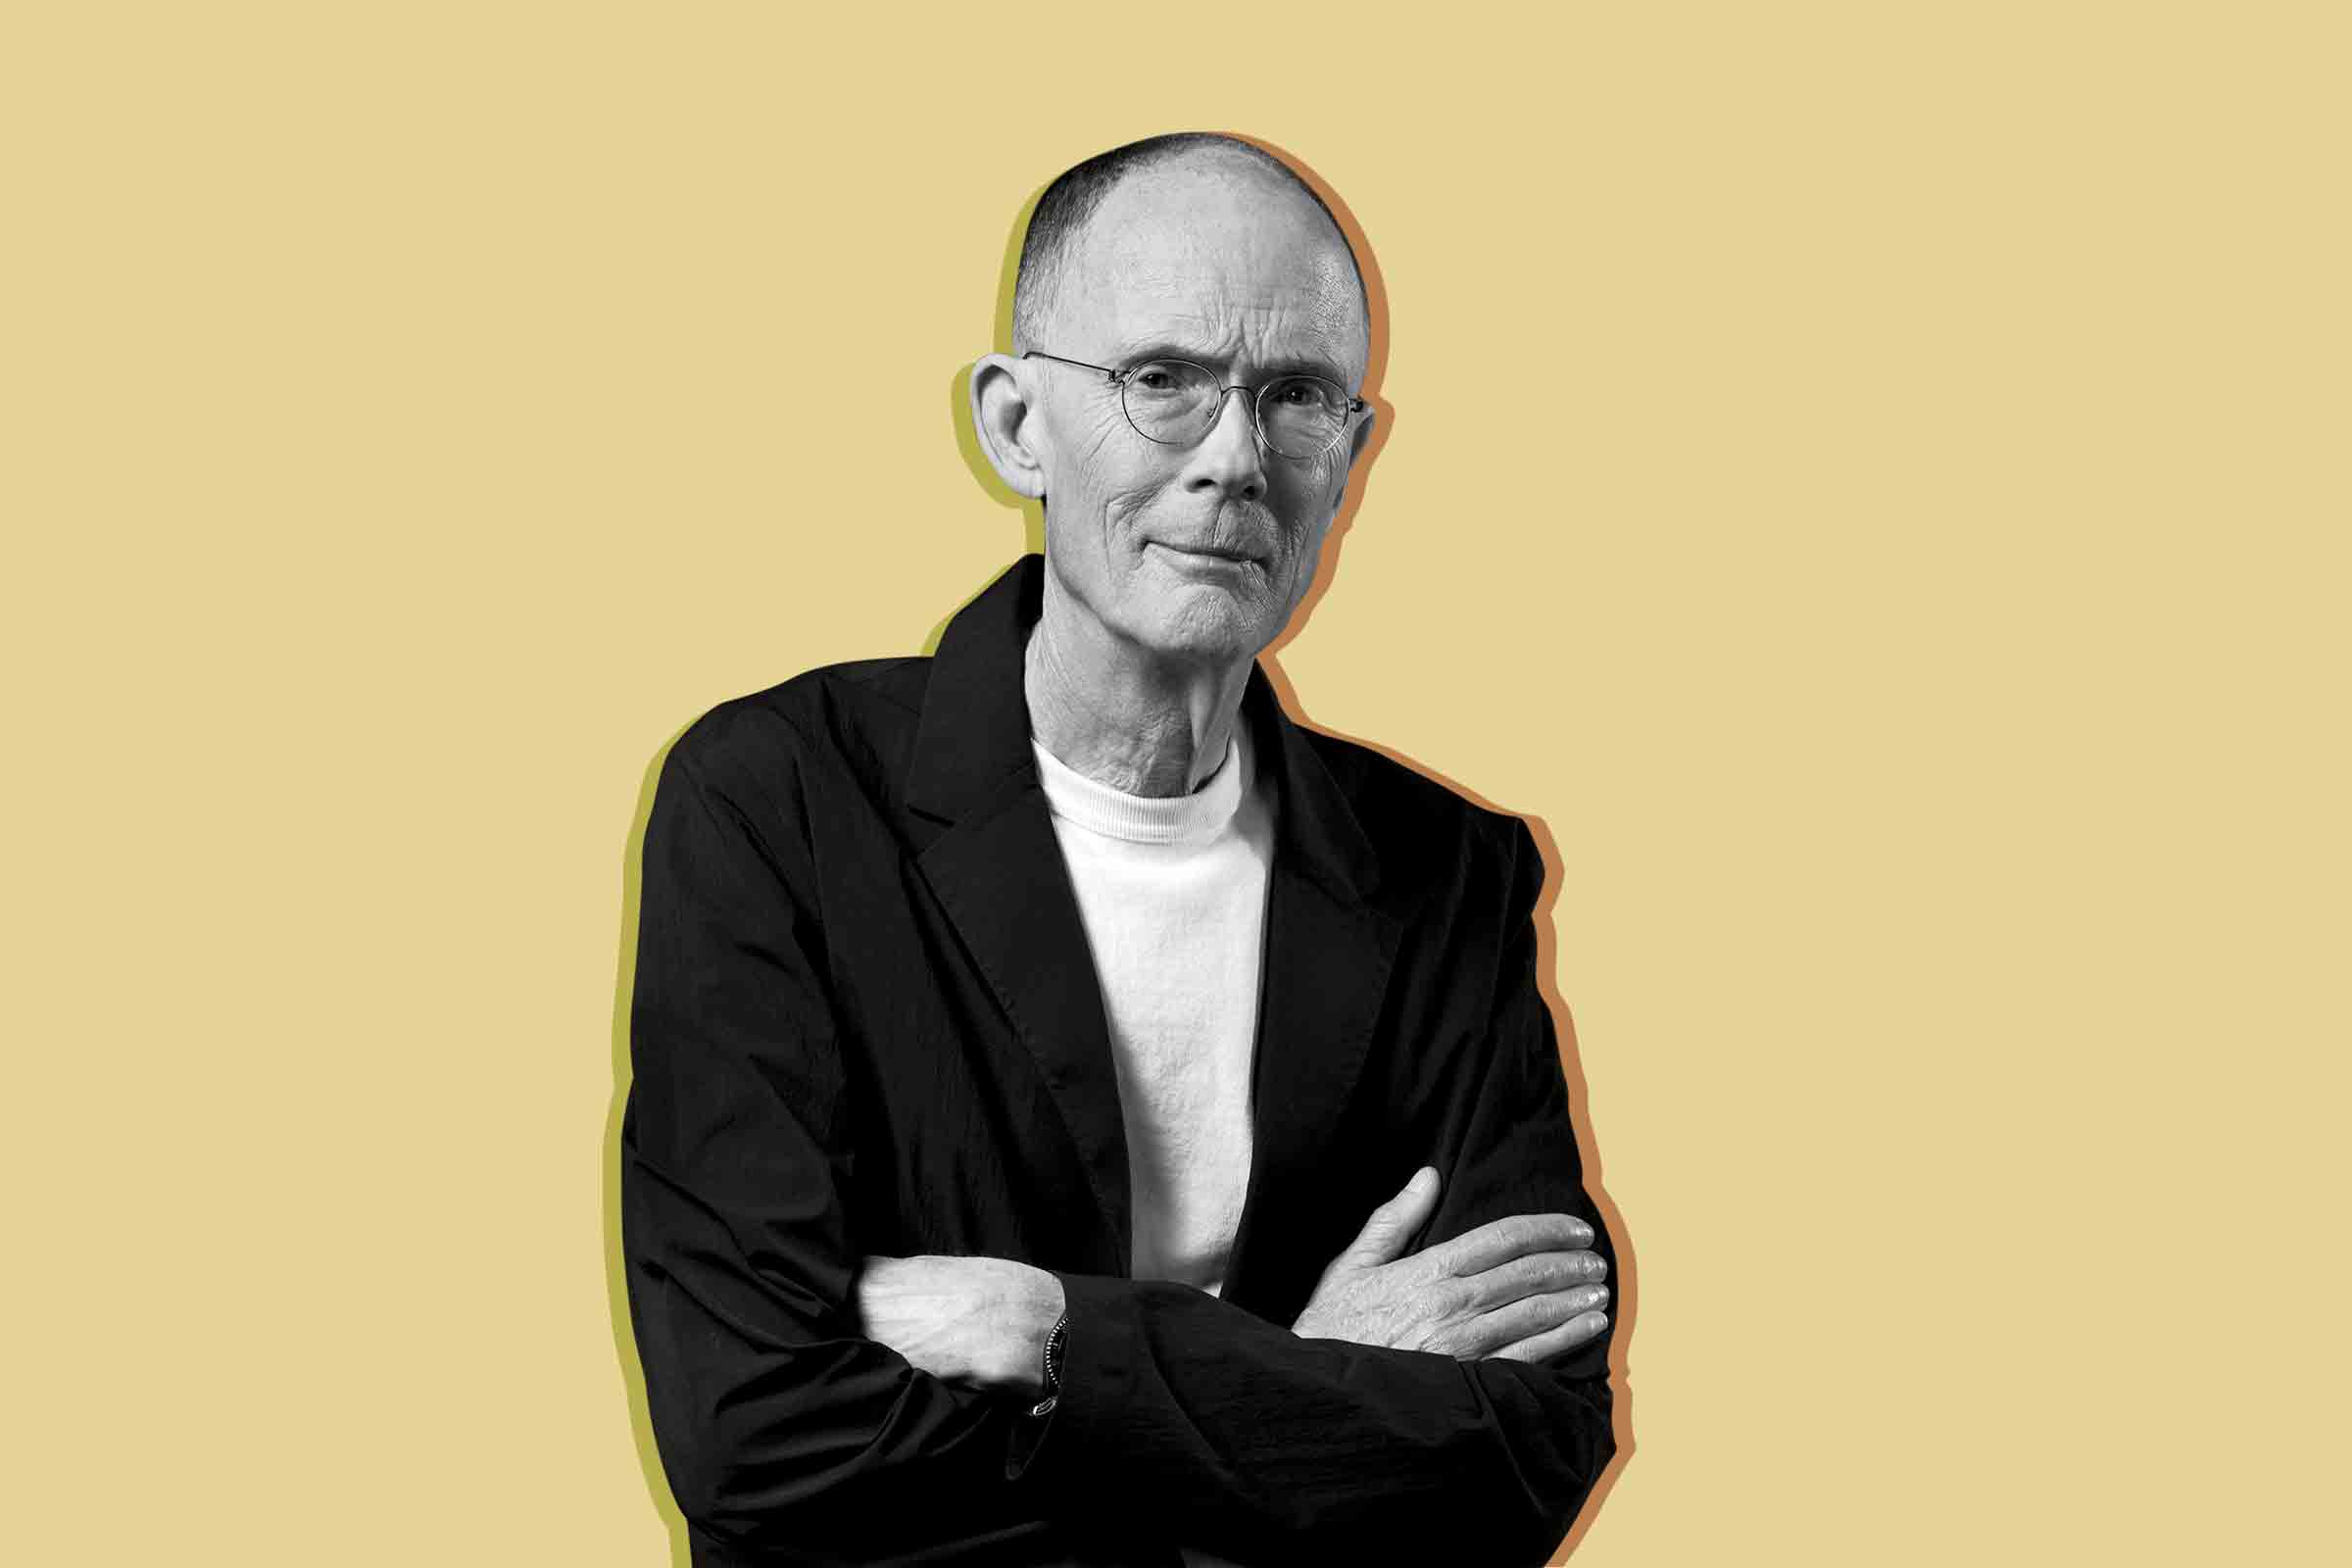 """Sci-Fi Novelist William Gibson on the Invention of the Term """"Cyberspace"""" and How AI Could be Truly Intelligent"""